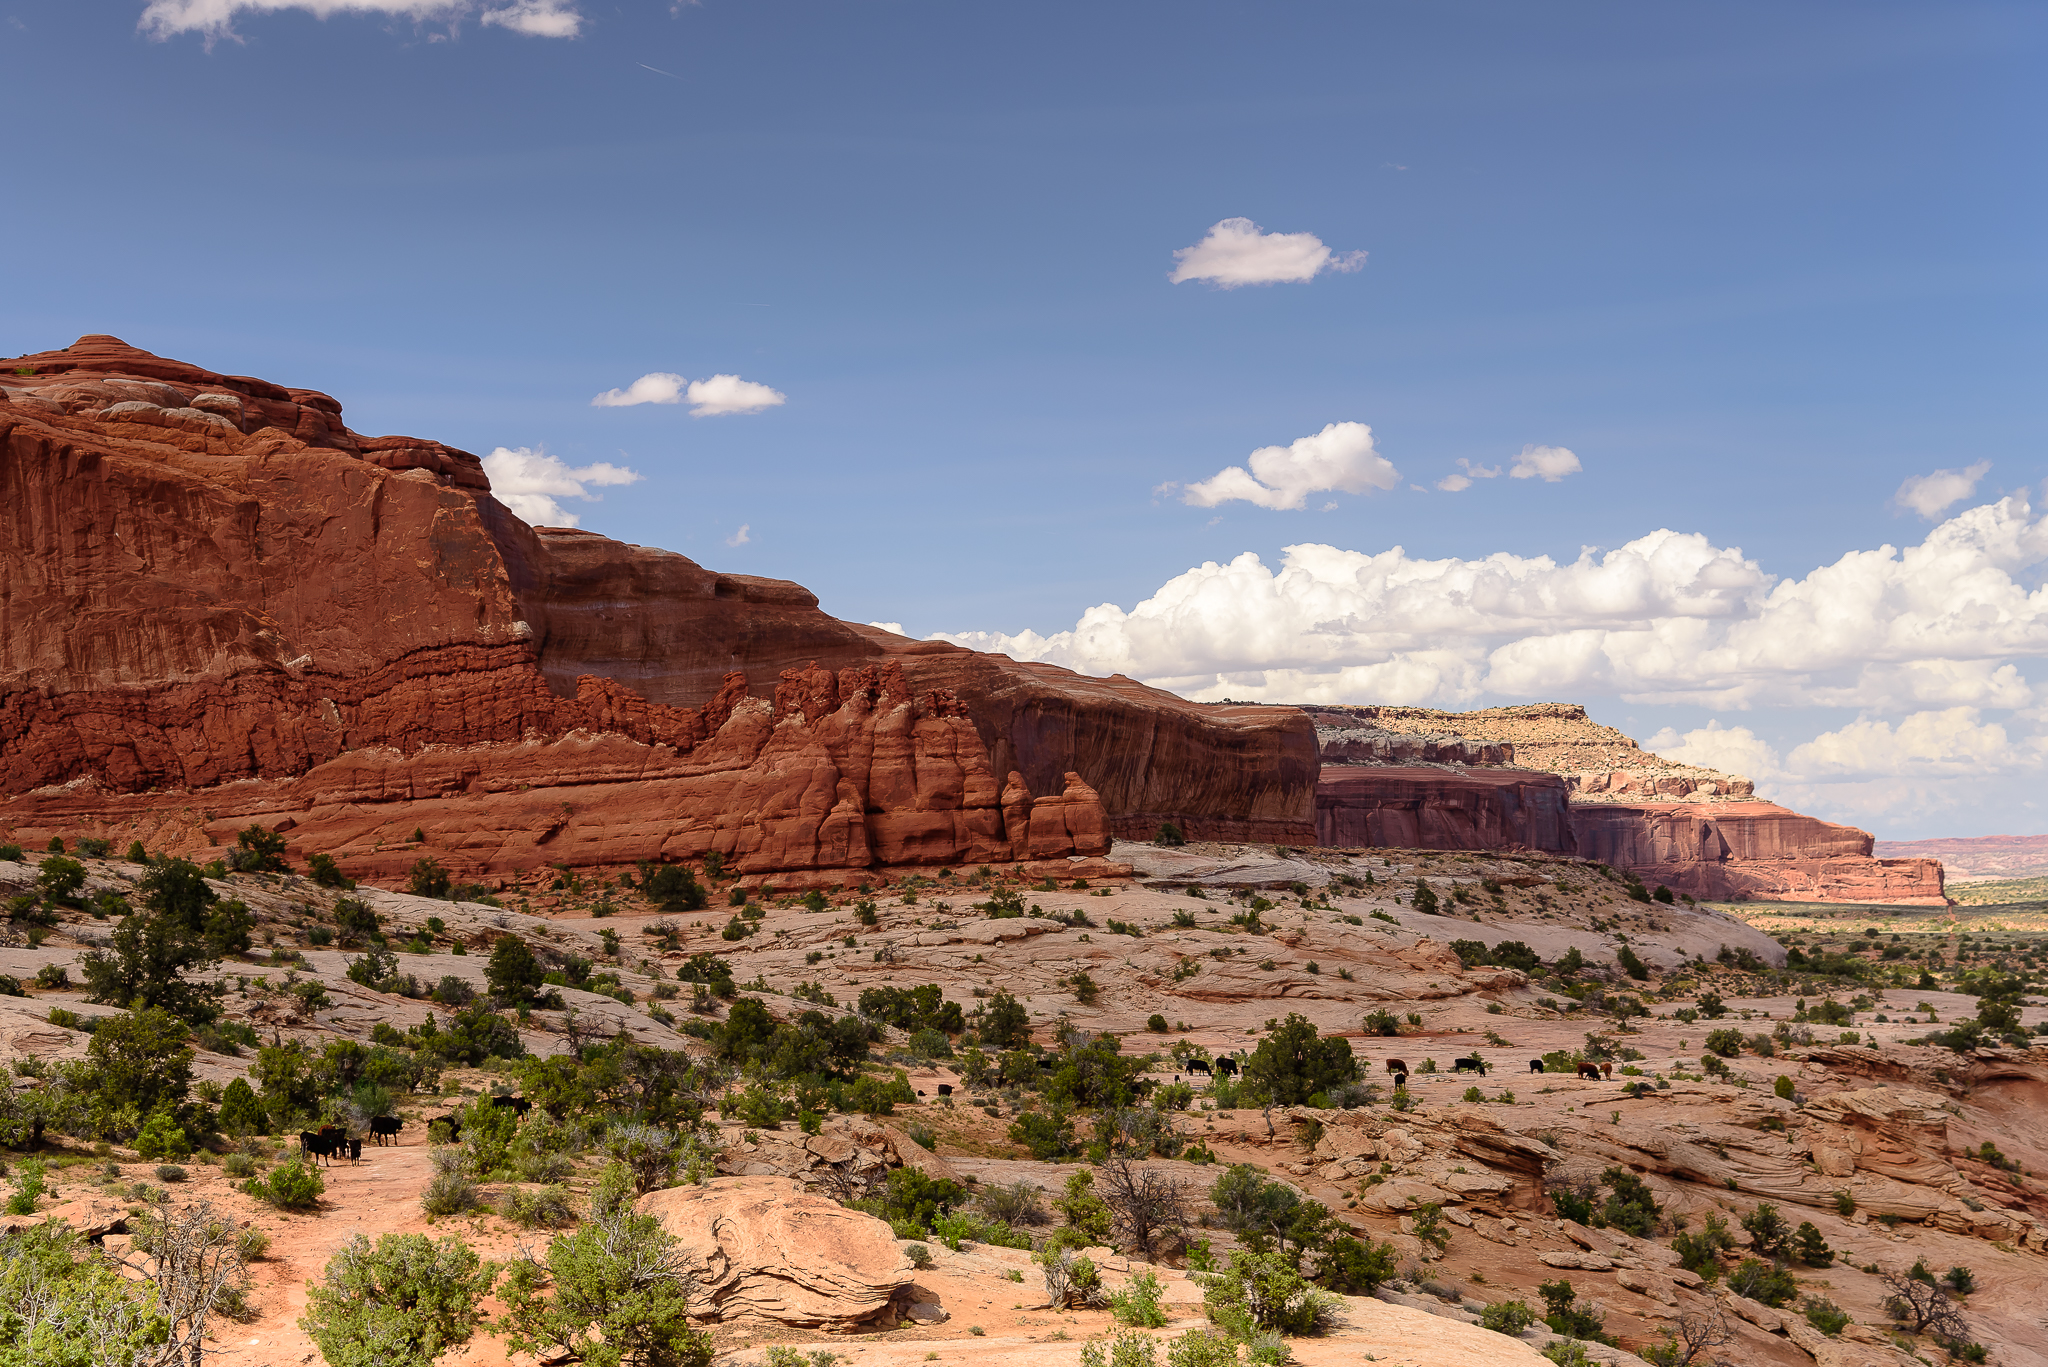 The cattle parade. Never had I seen (or heard) wild cattle on the move. Canyonlands National Park, UT.